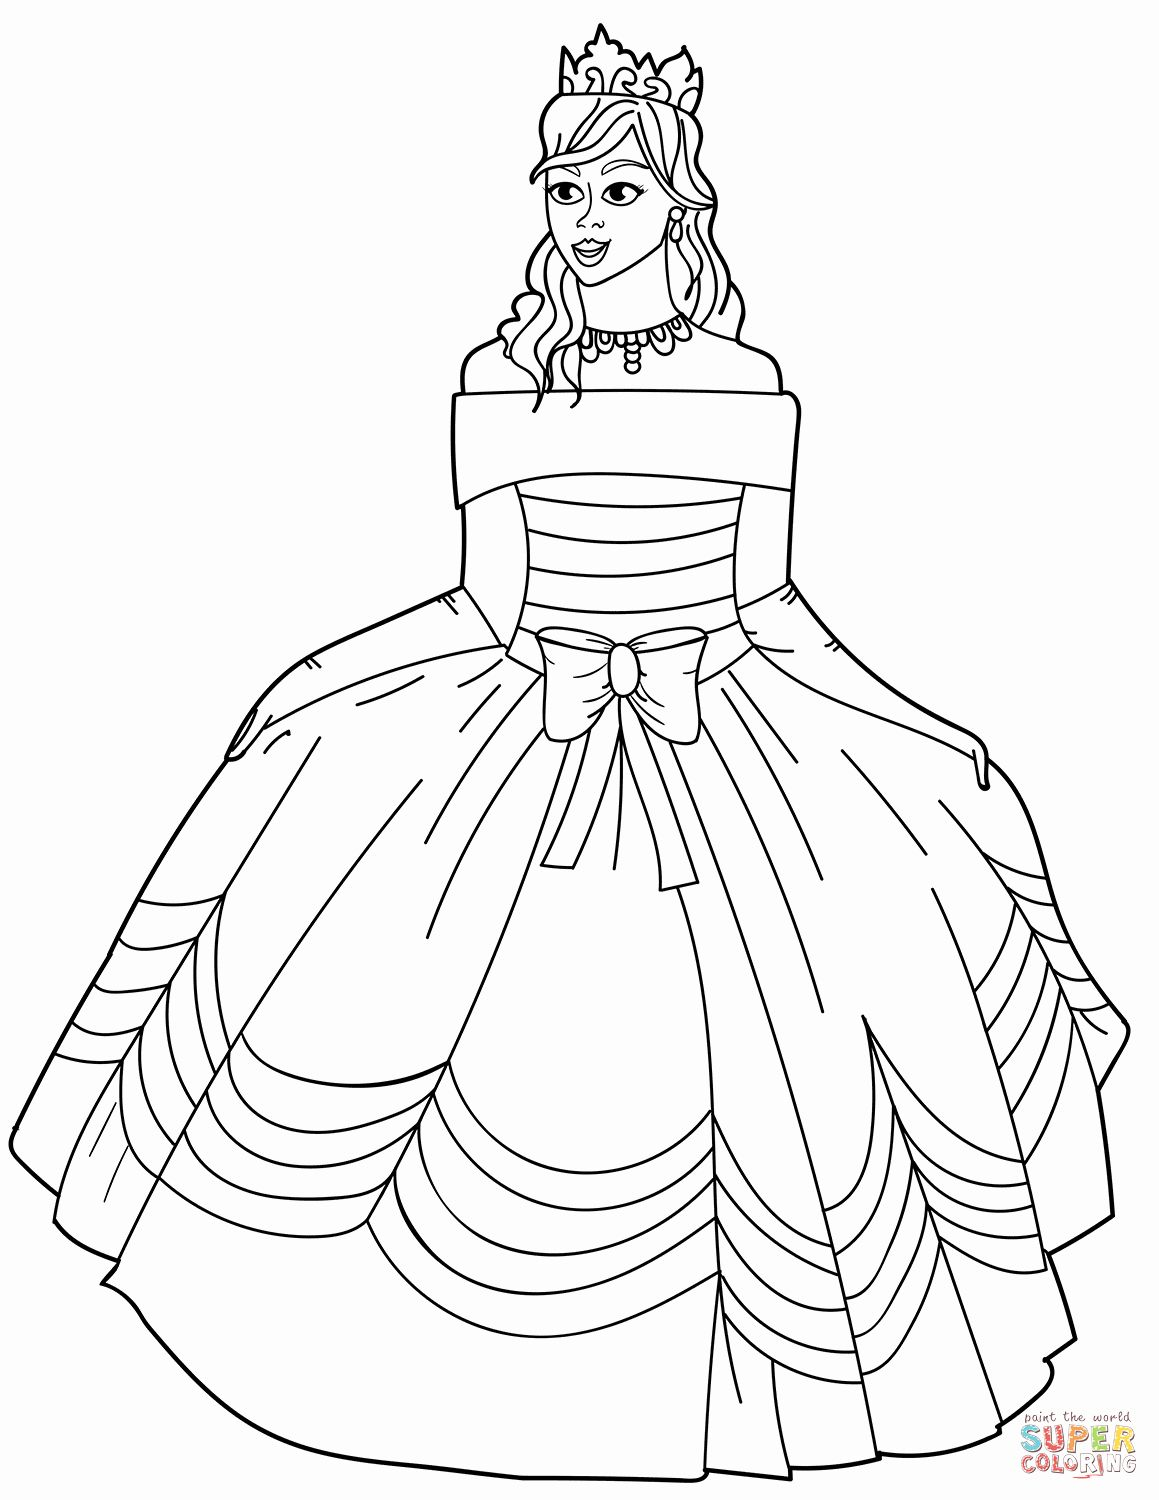 Princess Dress Coloring Pages Best Of Princess In Ball Gown F The Shoulder Dress Coloring Page In 2021